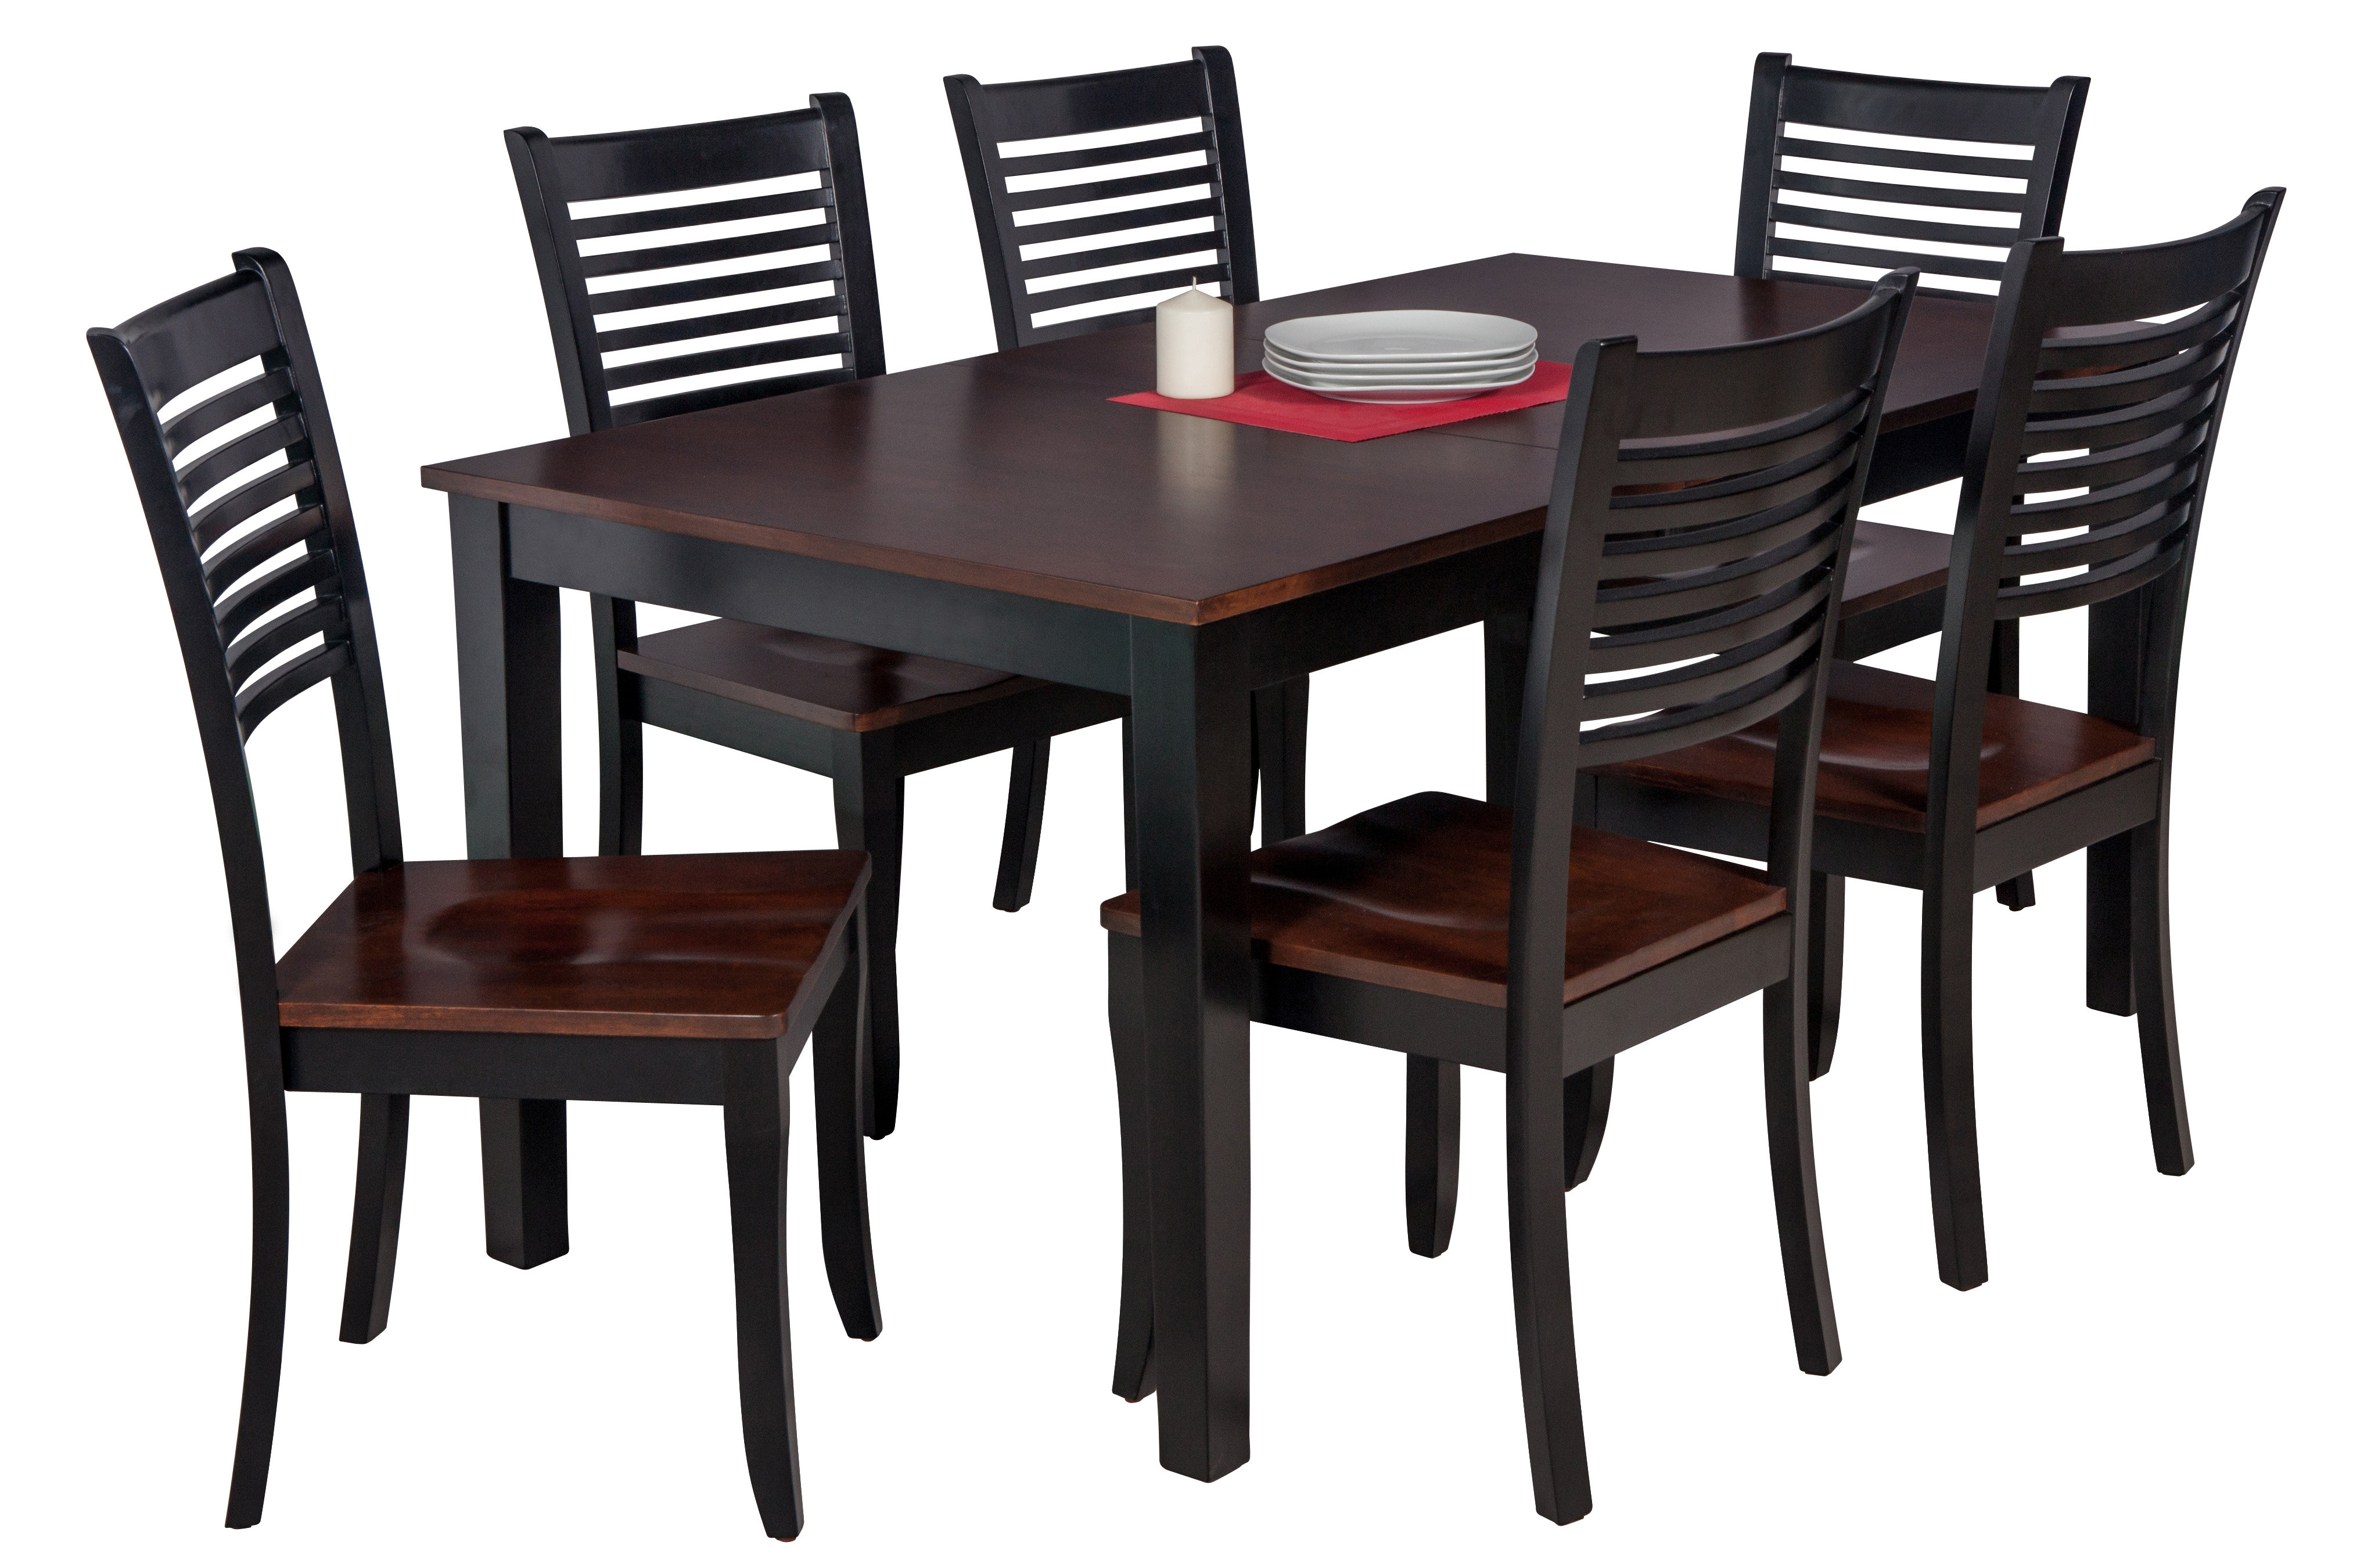 Hanska Wooden 5 Piece Counter Height Dining Table Sets (Set Of 5) For Most Up To Date Loon Peak Downieville Lawson Dumont 7 Piece Solid Wood Dining Set (#3 of 20)